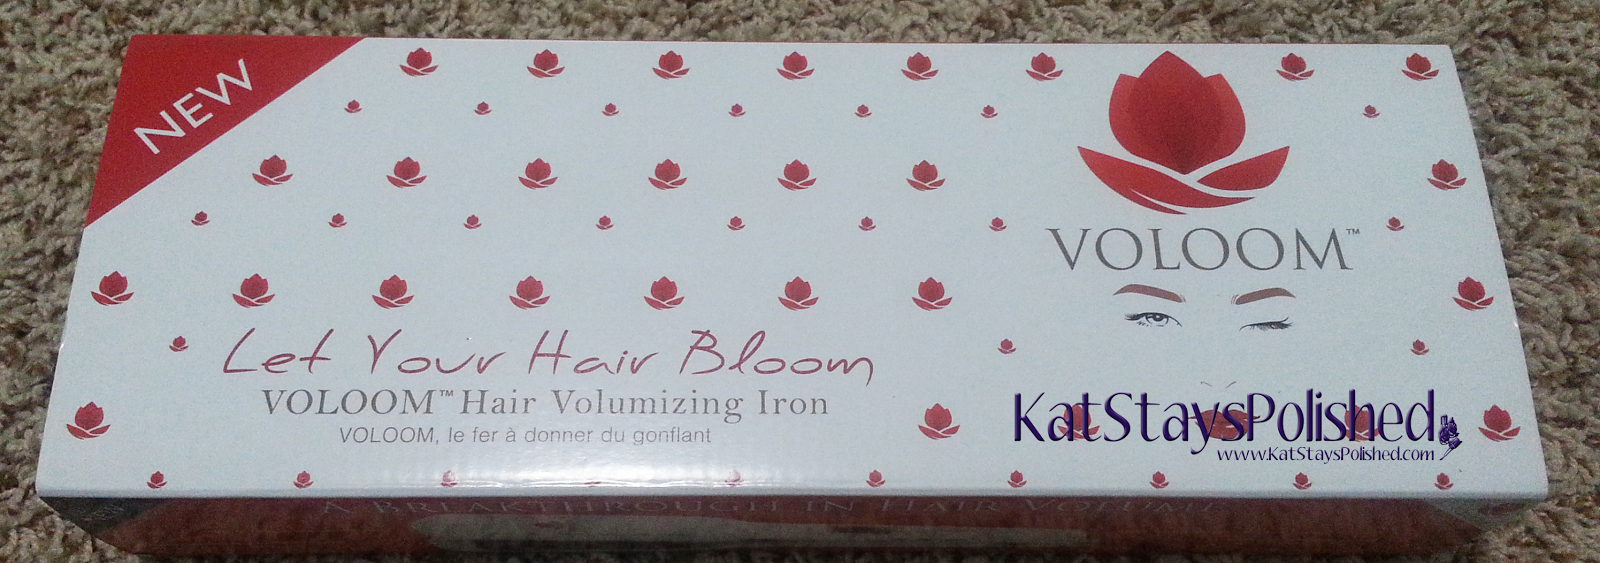 Voloom Hair Volumizing Iron | Kat Stays Polished